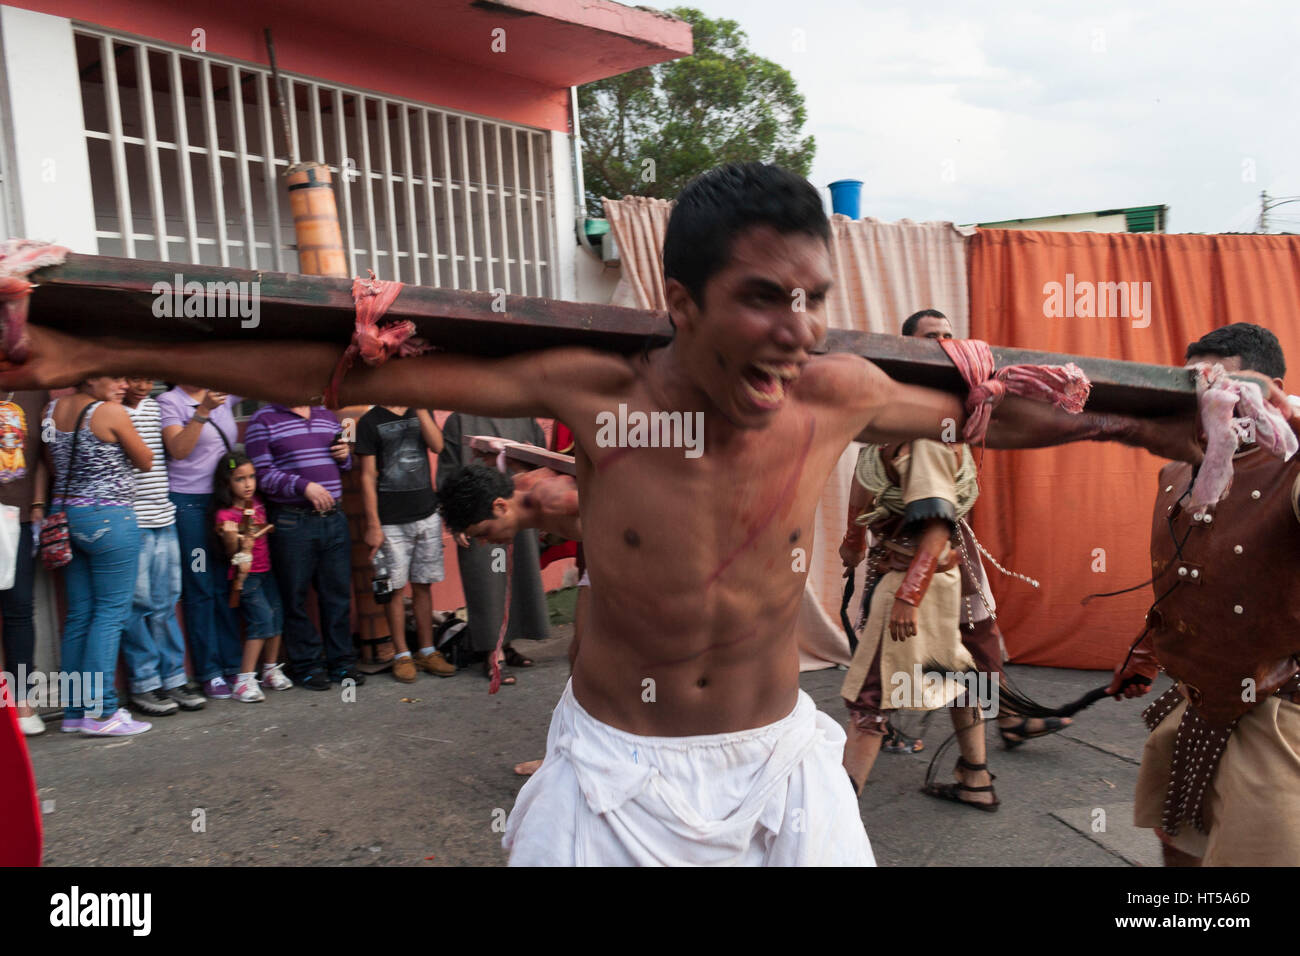 Venezuela, Caracas, Petare, Miranda State 06/04/2012. Dramatization of the crucifixion of Jesus Christ in El Nazareno - Stock Image